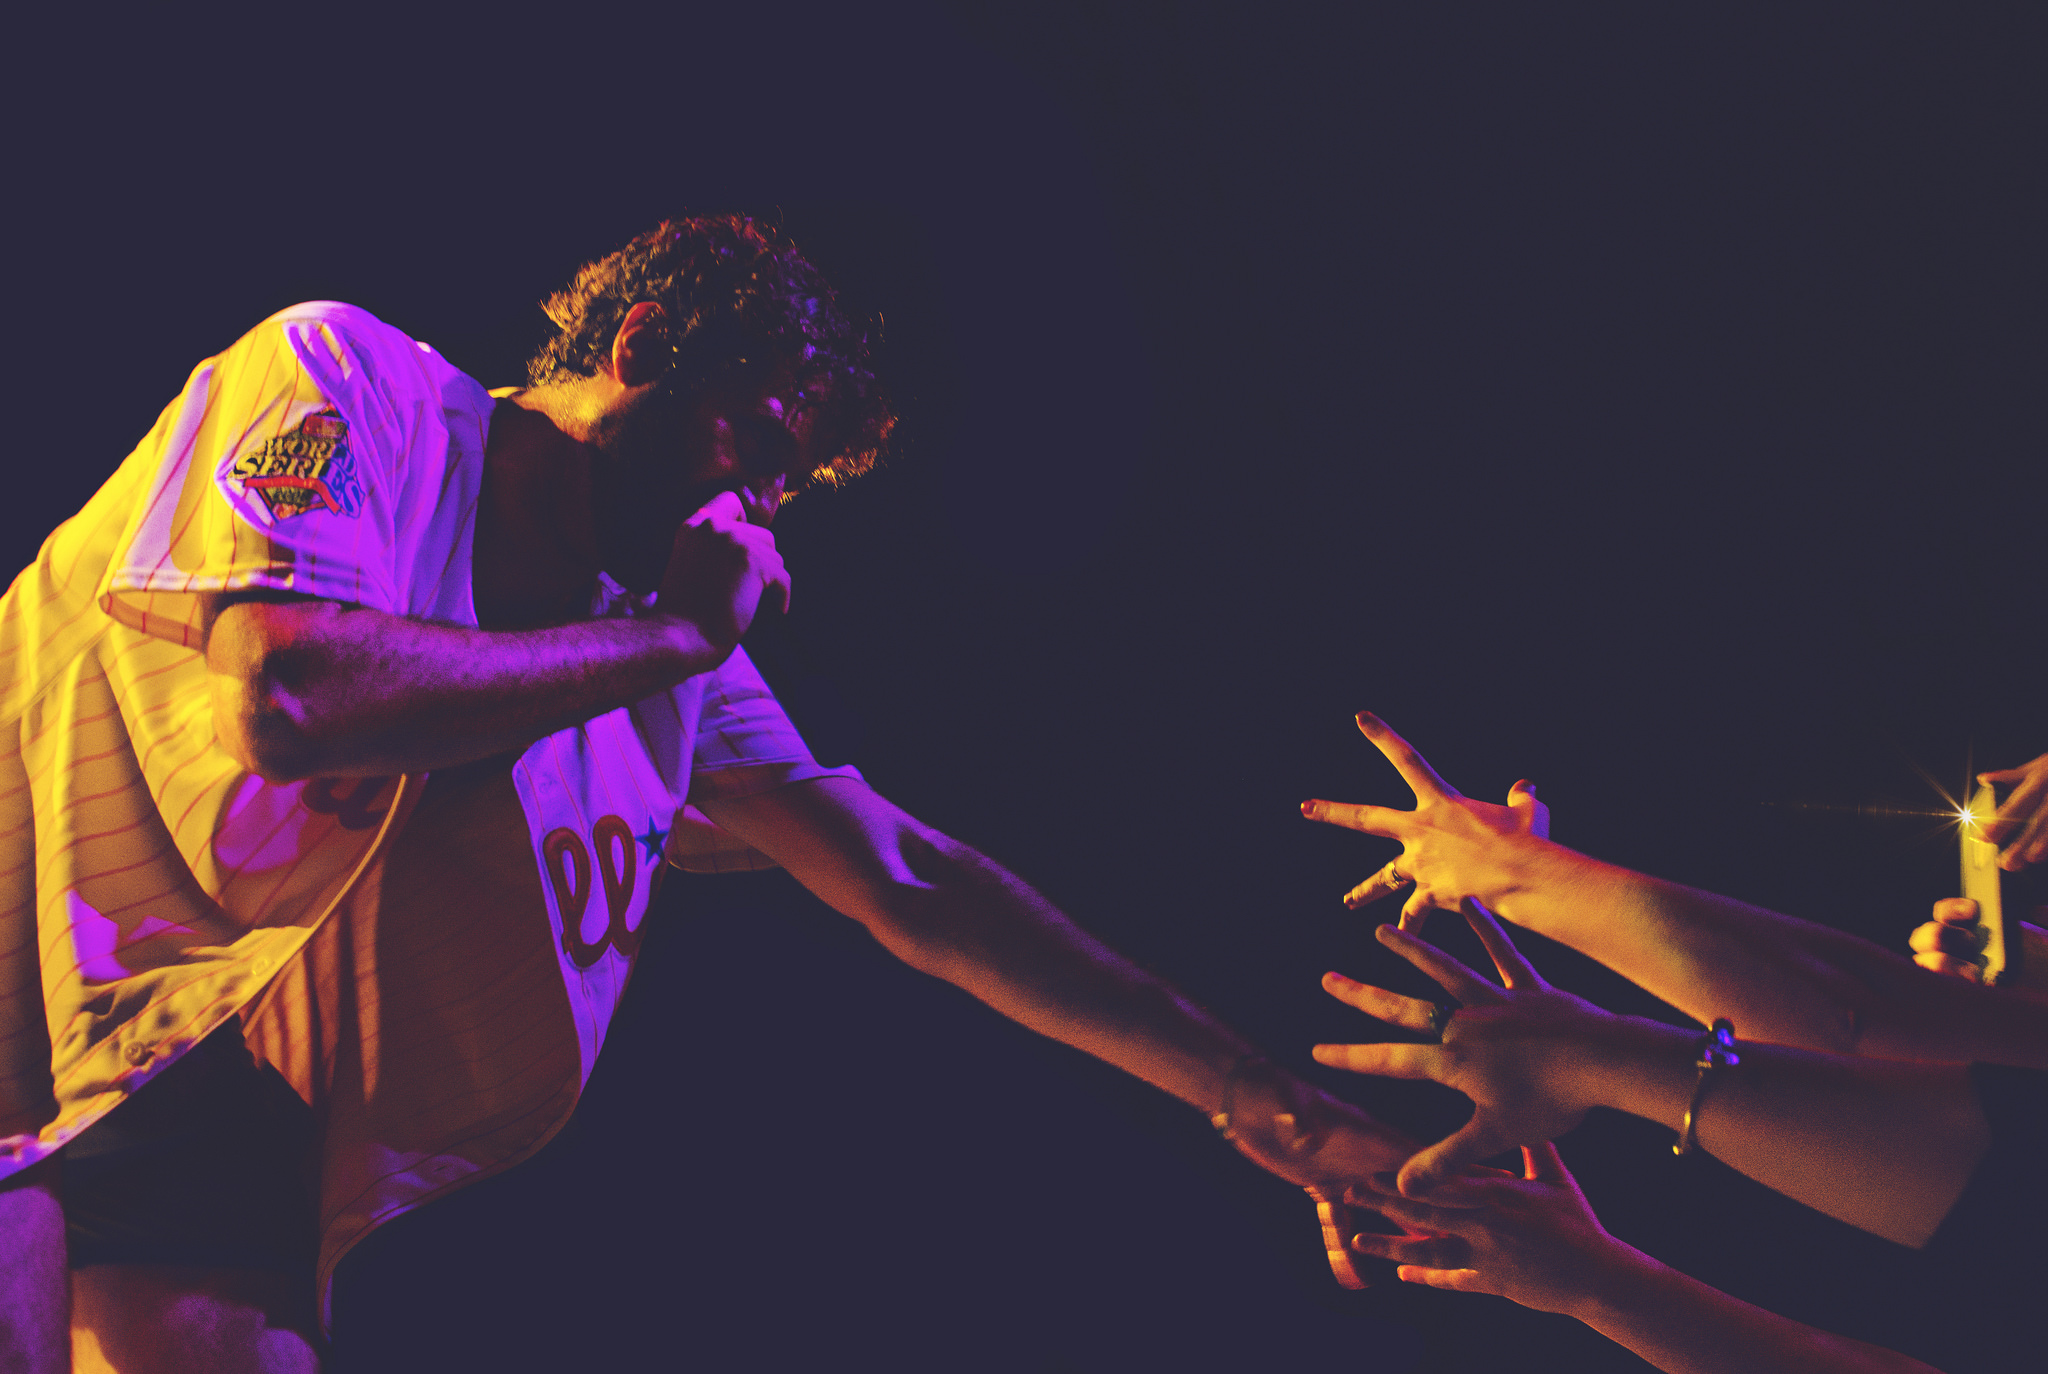 Lil Dicky at Theater of Living Arts in Philadelphia